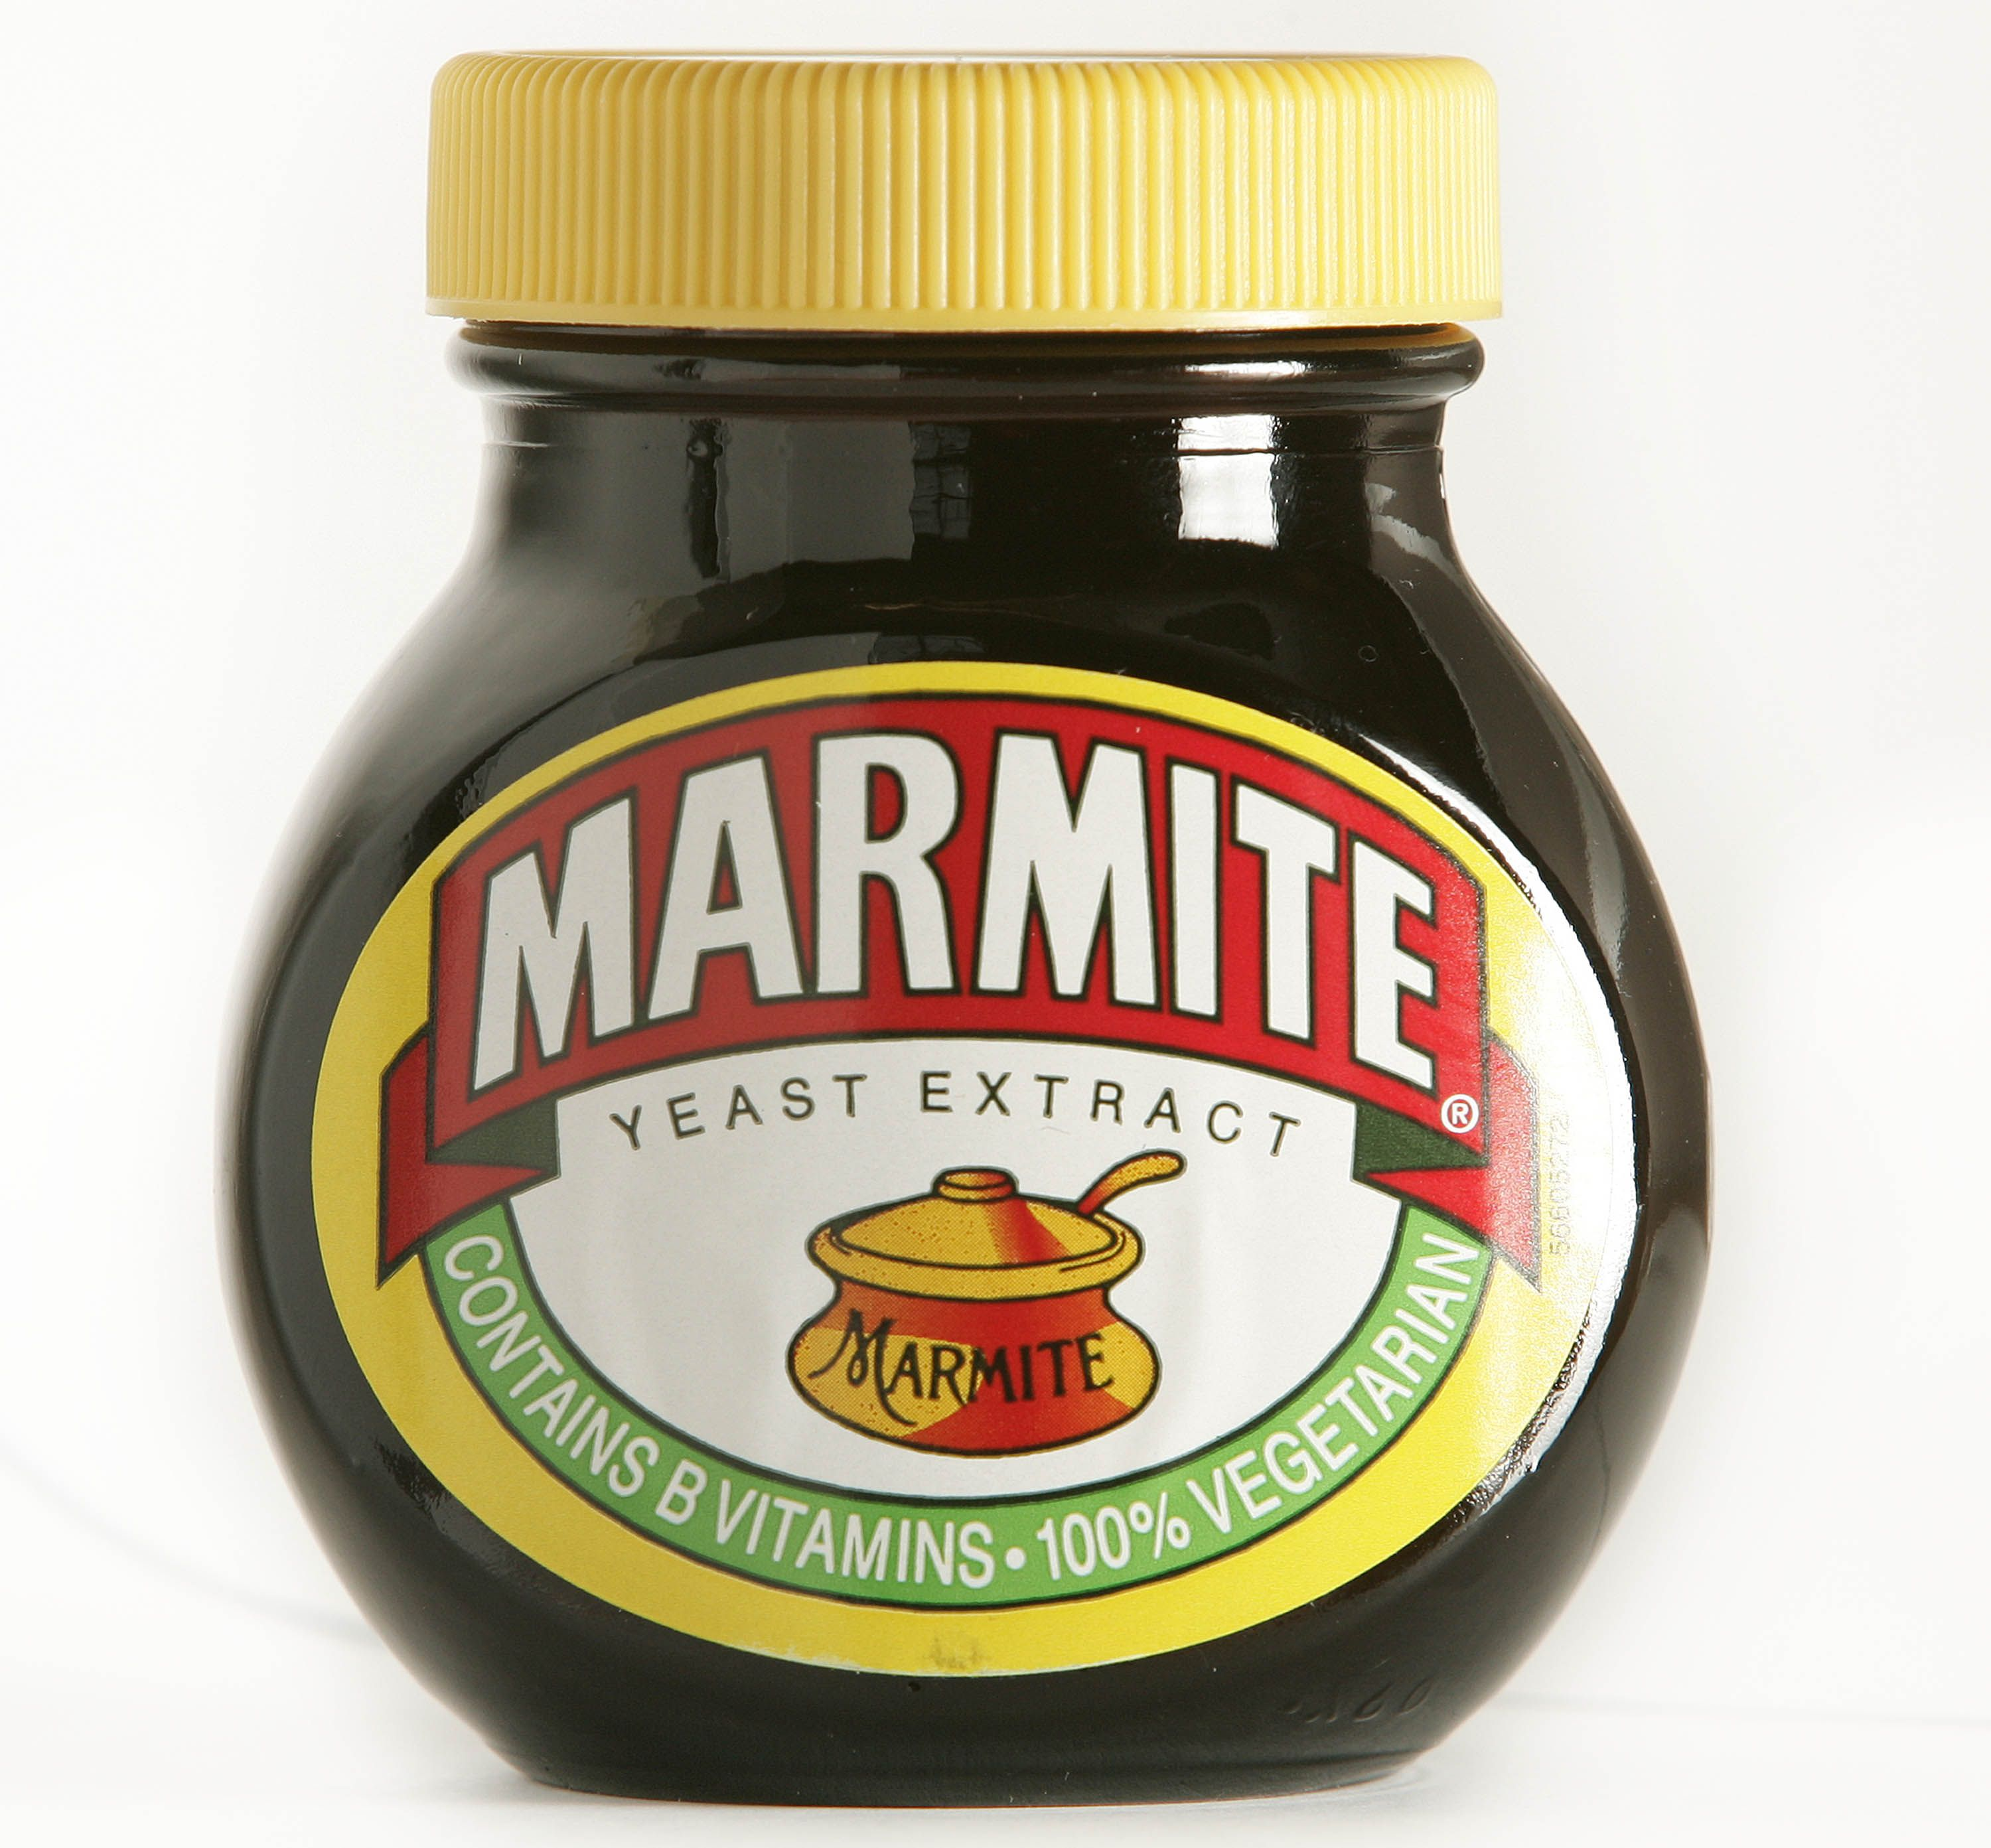 The handy Marmite jar hack you need to know about